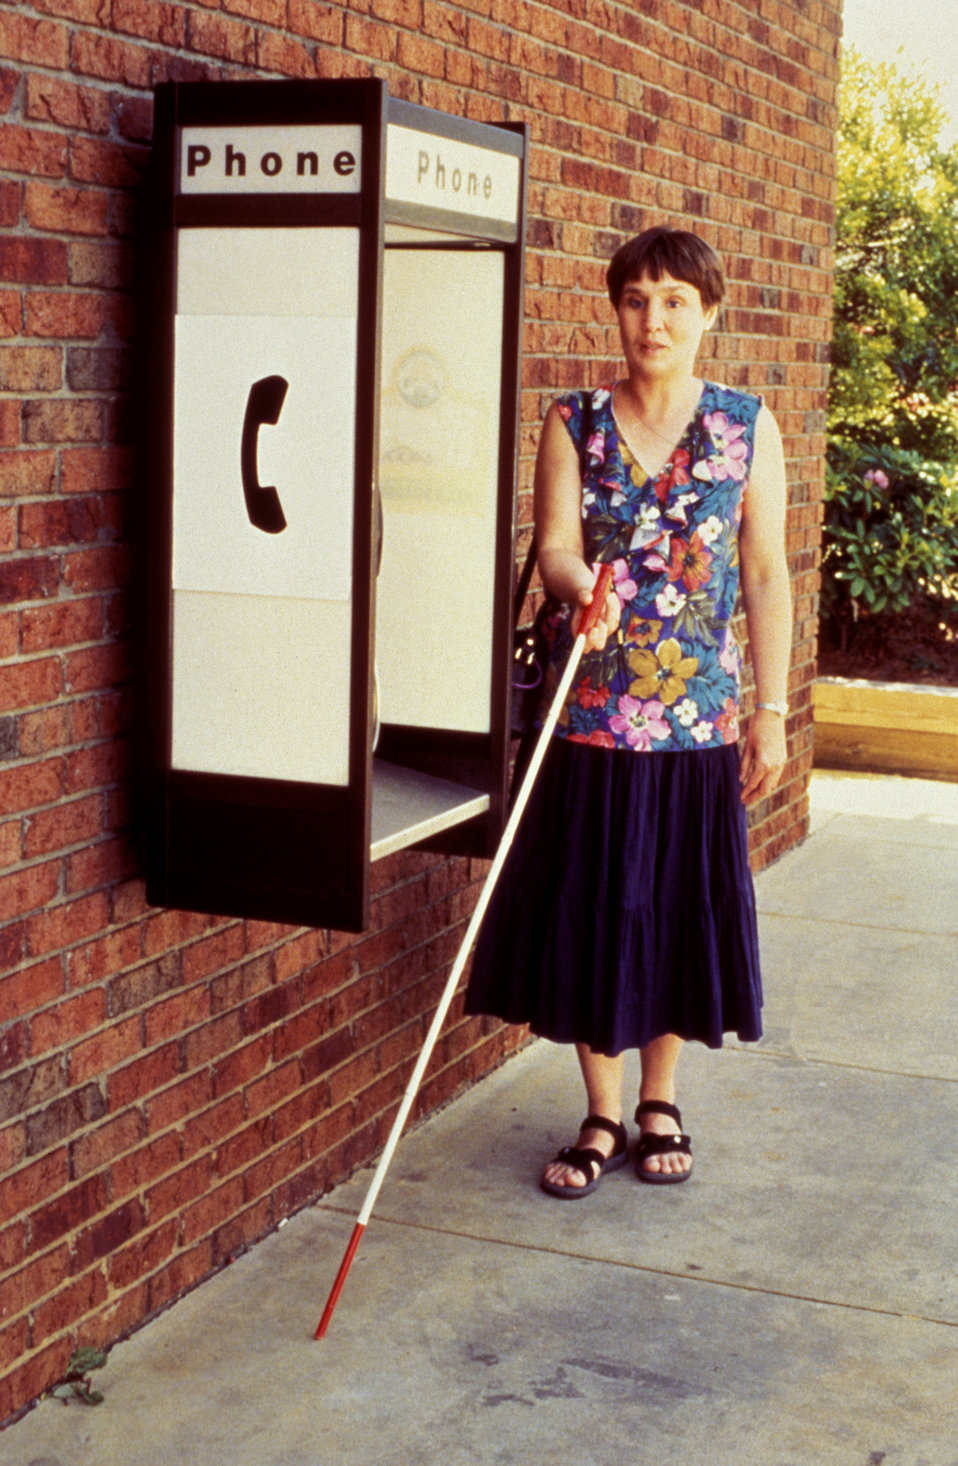 This visually-impaired woman was using a walking stick in order to 'extend her reach' in order to detect obstacles in her path. Using a 'swe